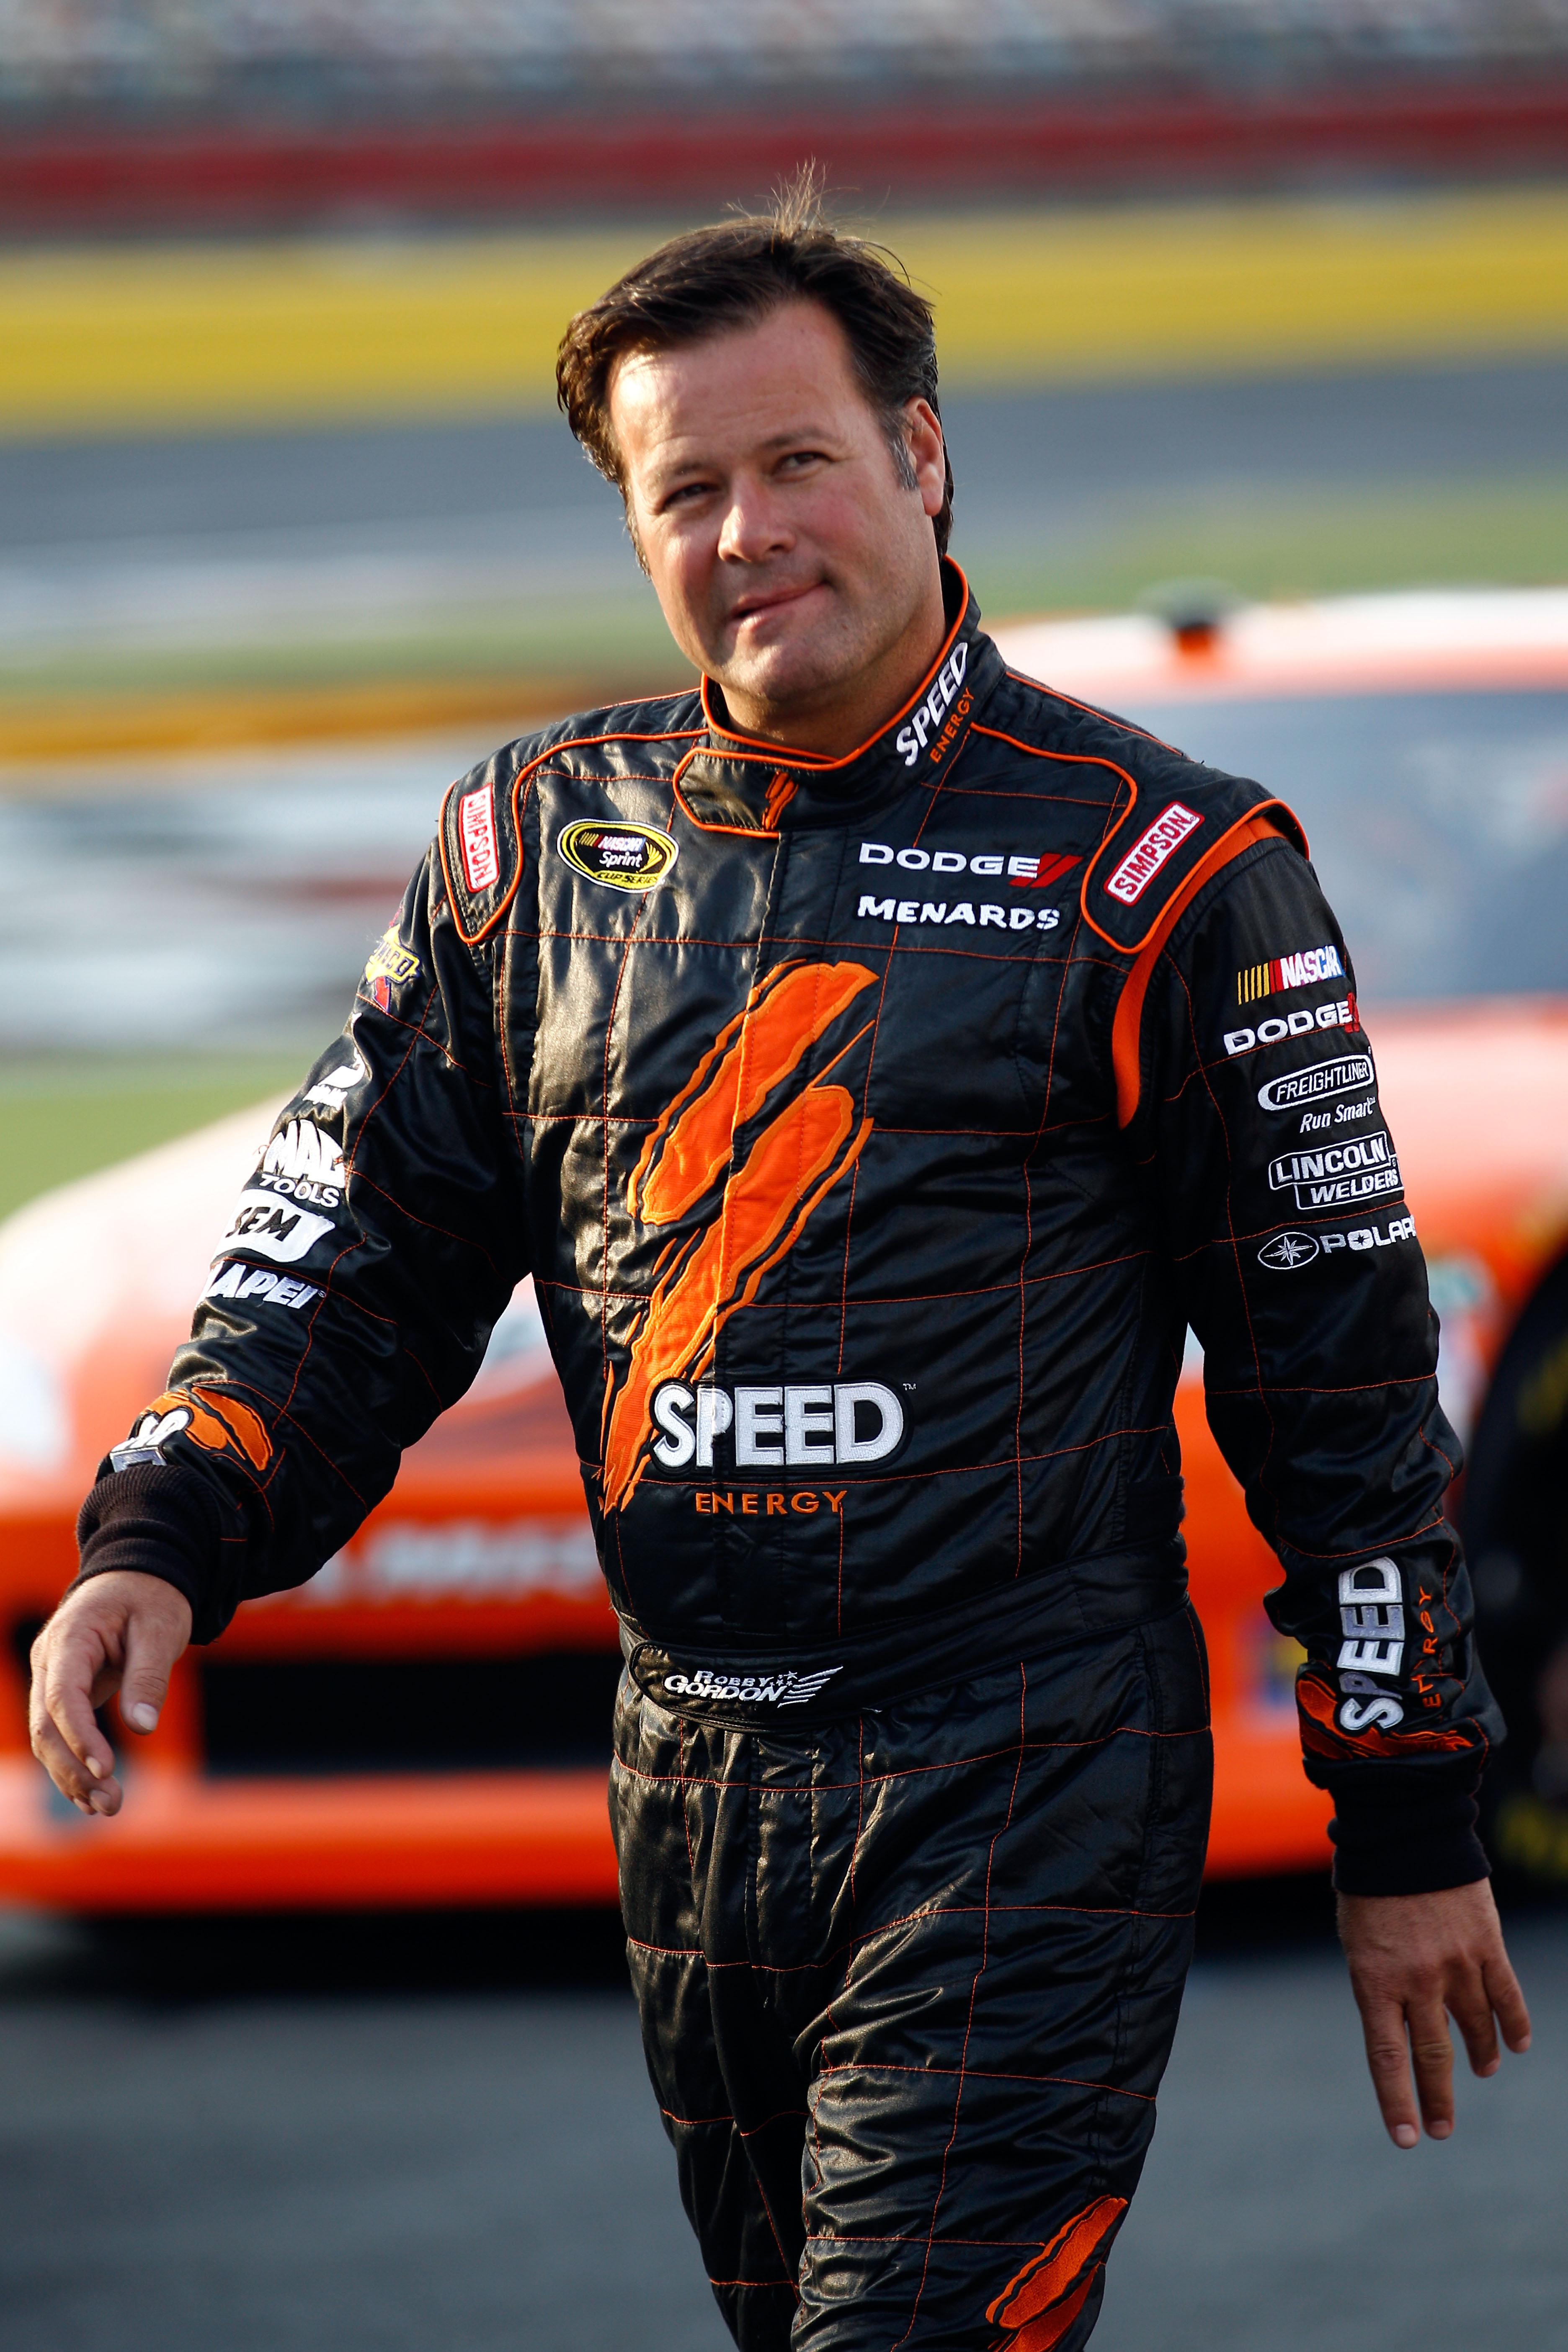 CHARLOTTE, NC - MAY 26:  Robby Gordon, driver of the #7 Speed Energy Dodge, walks on the grid during qualifying for the NASCAR Sprint Cup Series Coca-Cola 600 at Charlotte Motor Speedway on May 26, 2011 in Charlotte, North Carolina.  (Photo by Chris Grayt